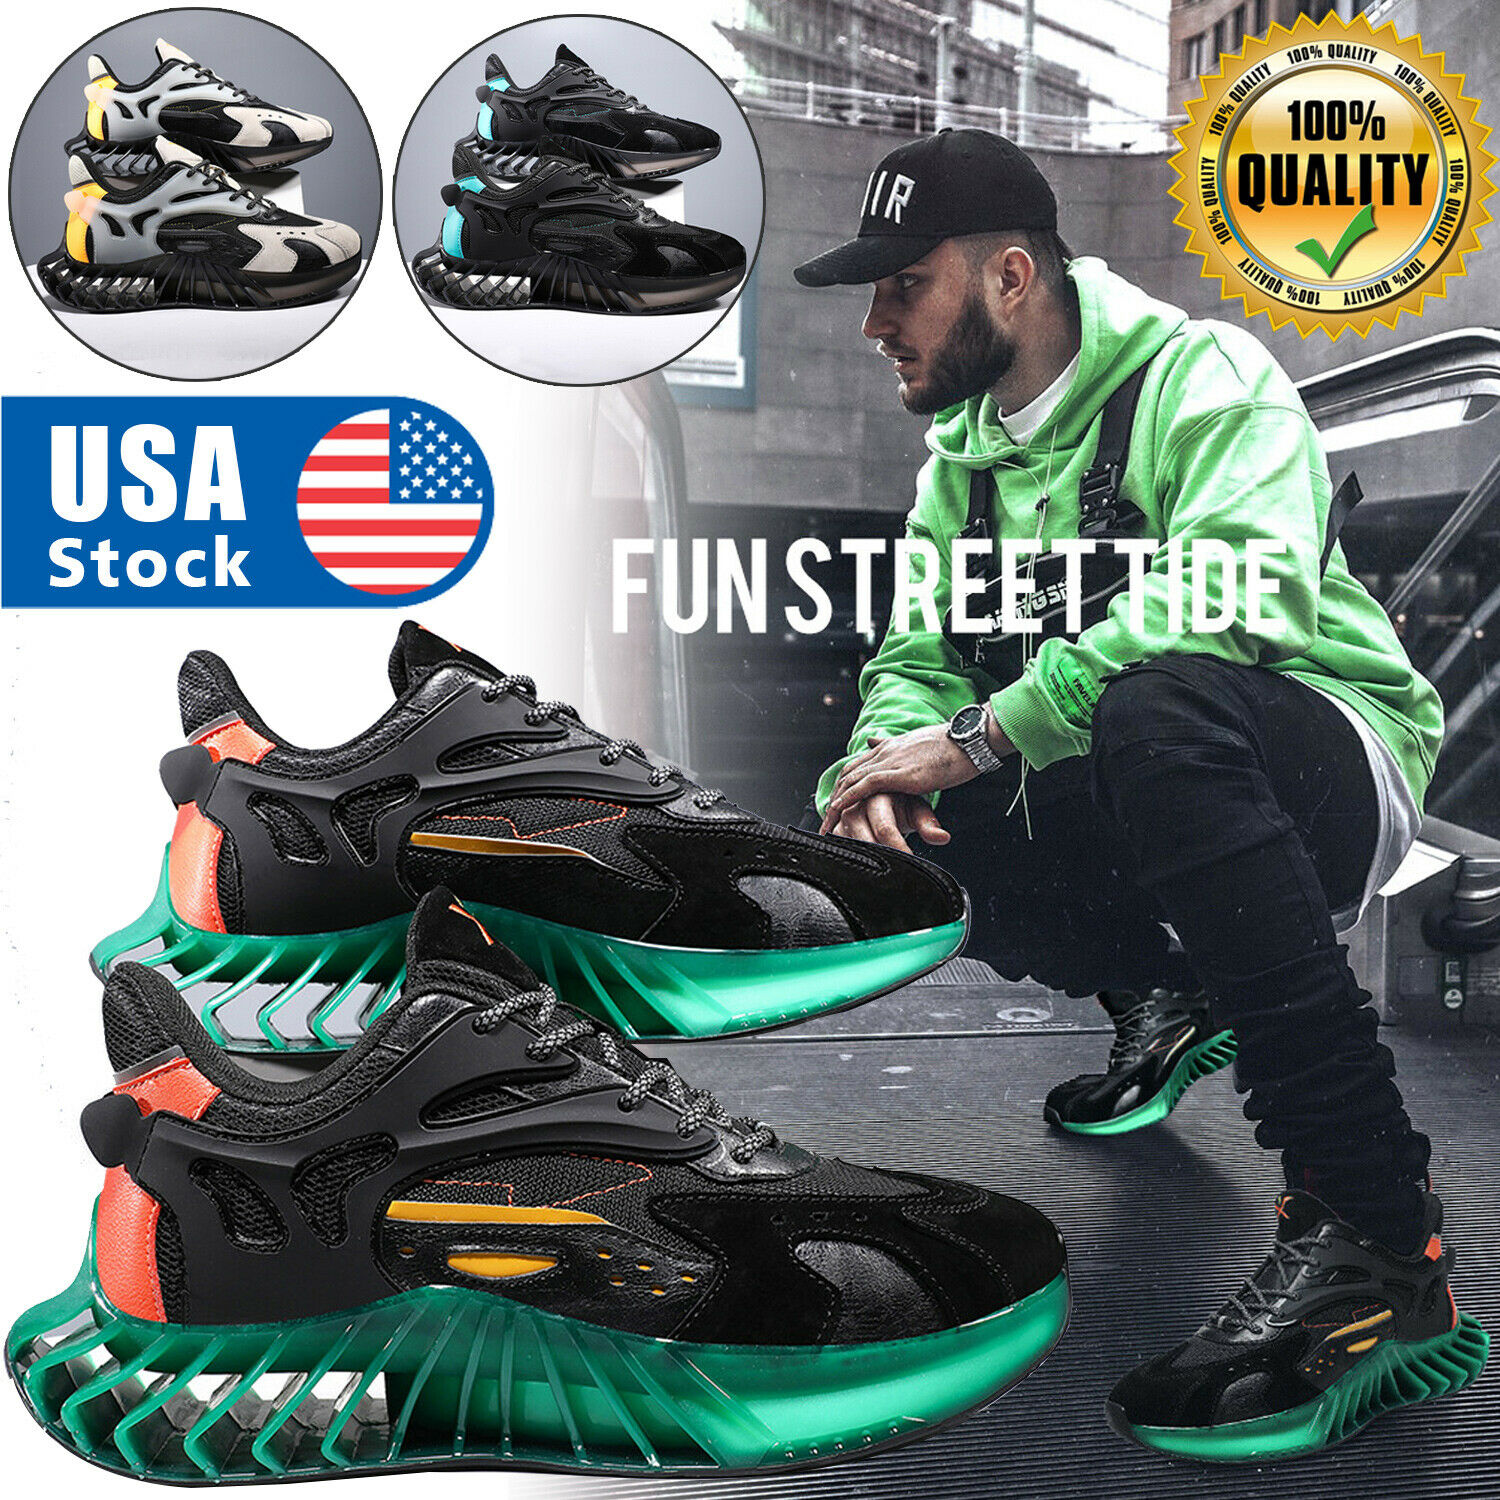 US Men's Casual Athletic Jogging Sneakers Outdoor Spots Running Tennis Gym Shoes Athletic Shoes